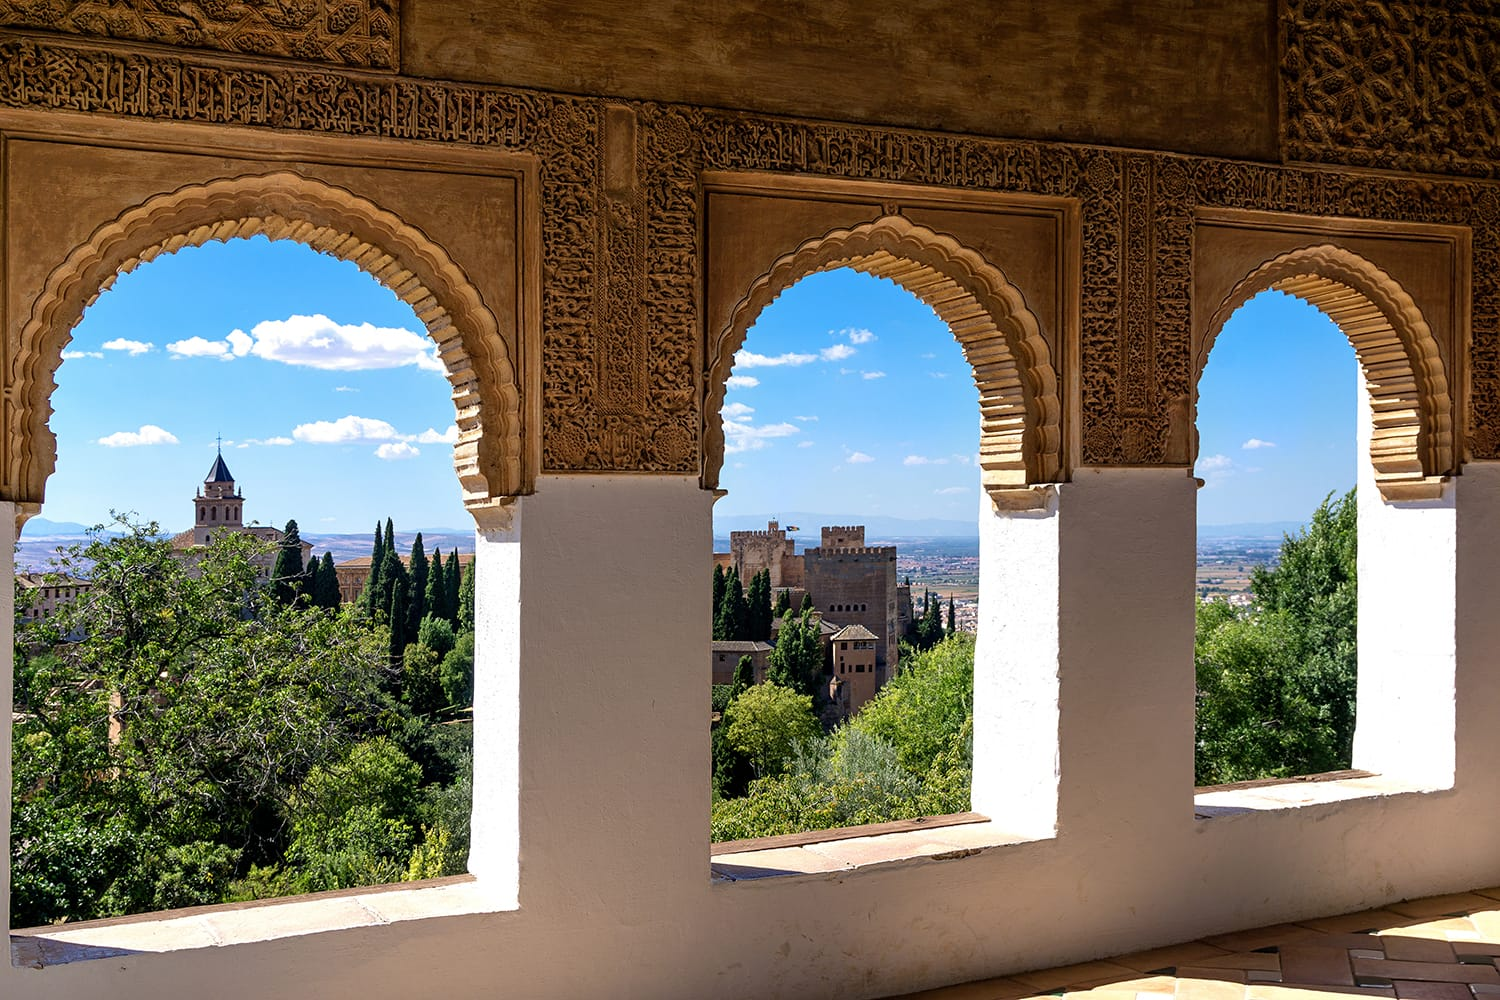 Stone arches in the world-famous Alhambra in Granada with beautiful views of the fortress and Granada, Spain